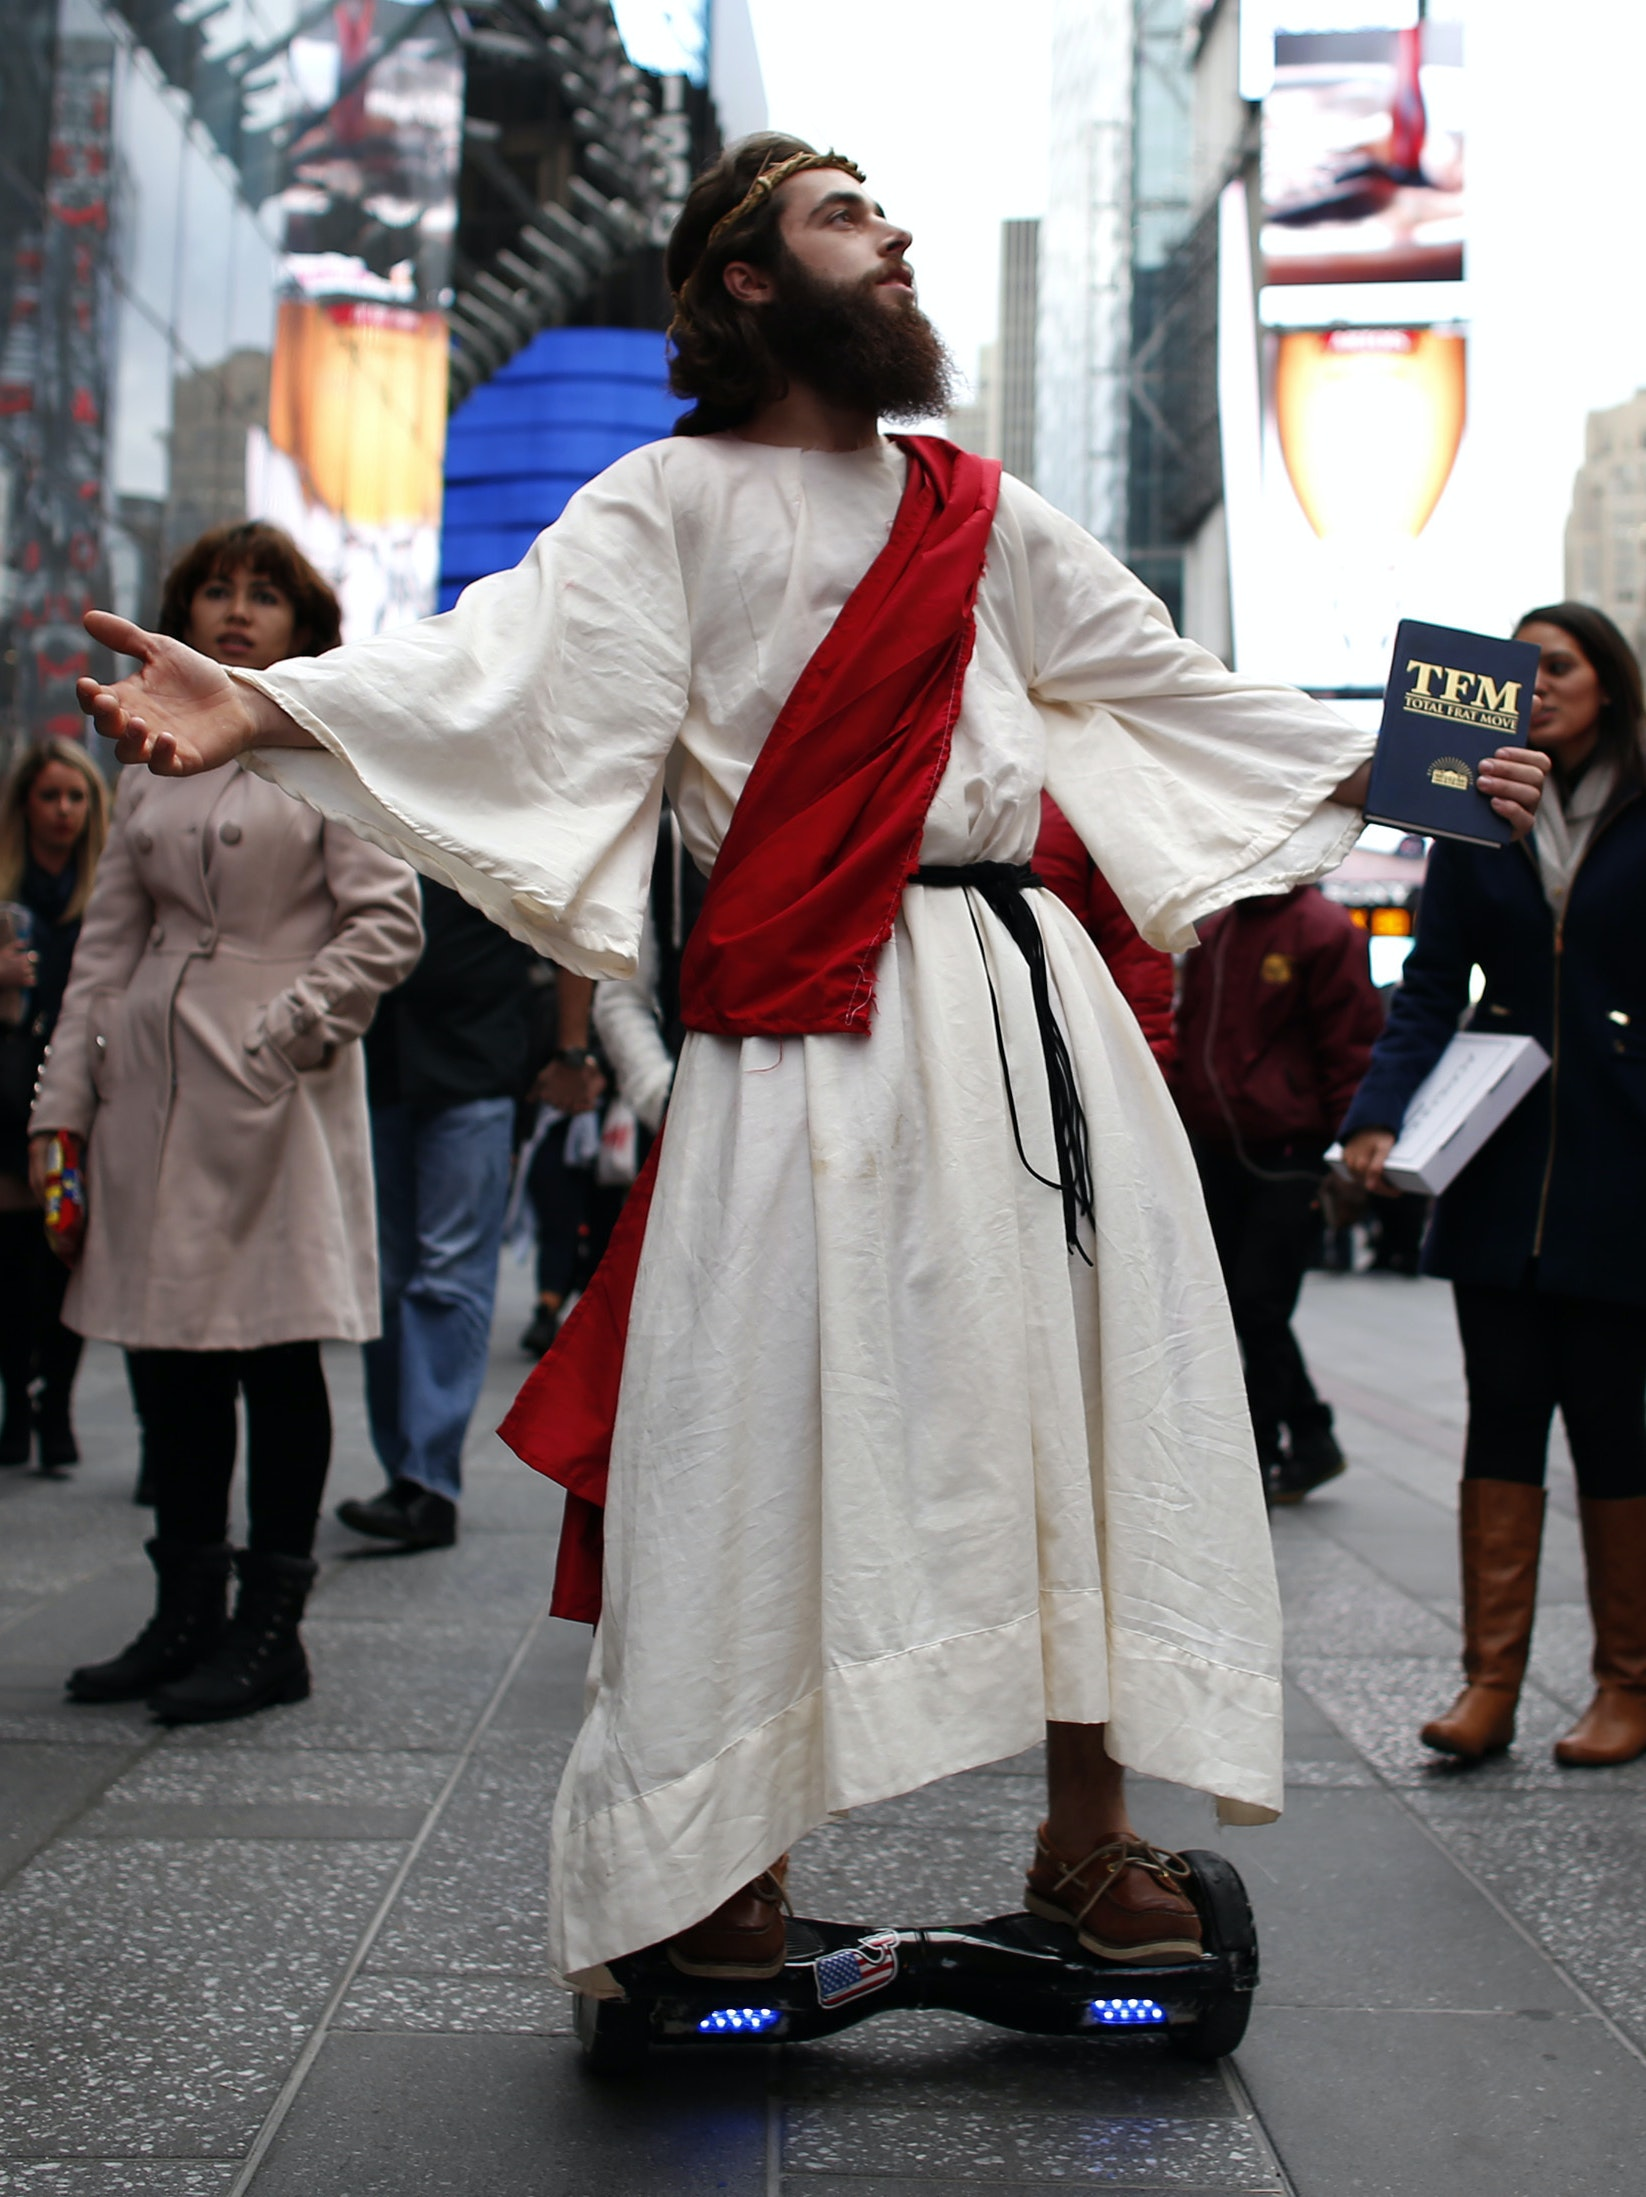 NEW YORK, NY - OCTOBER 31: A man dressed as Jesus Christ passes by on Times Square before the 42nd Annual Halloween Parade October 21, 2015 in New York City. (Photo by Kena Betancur/Getty Images)